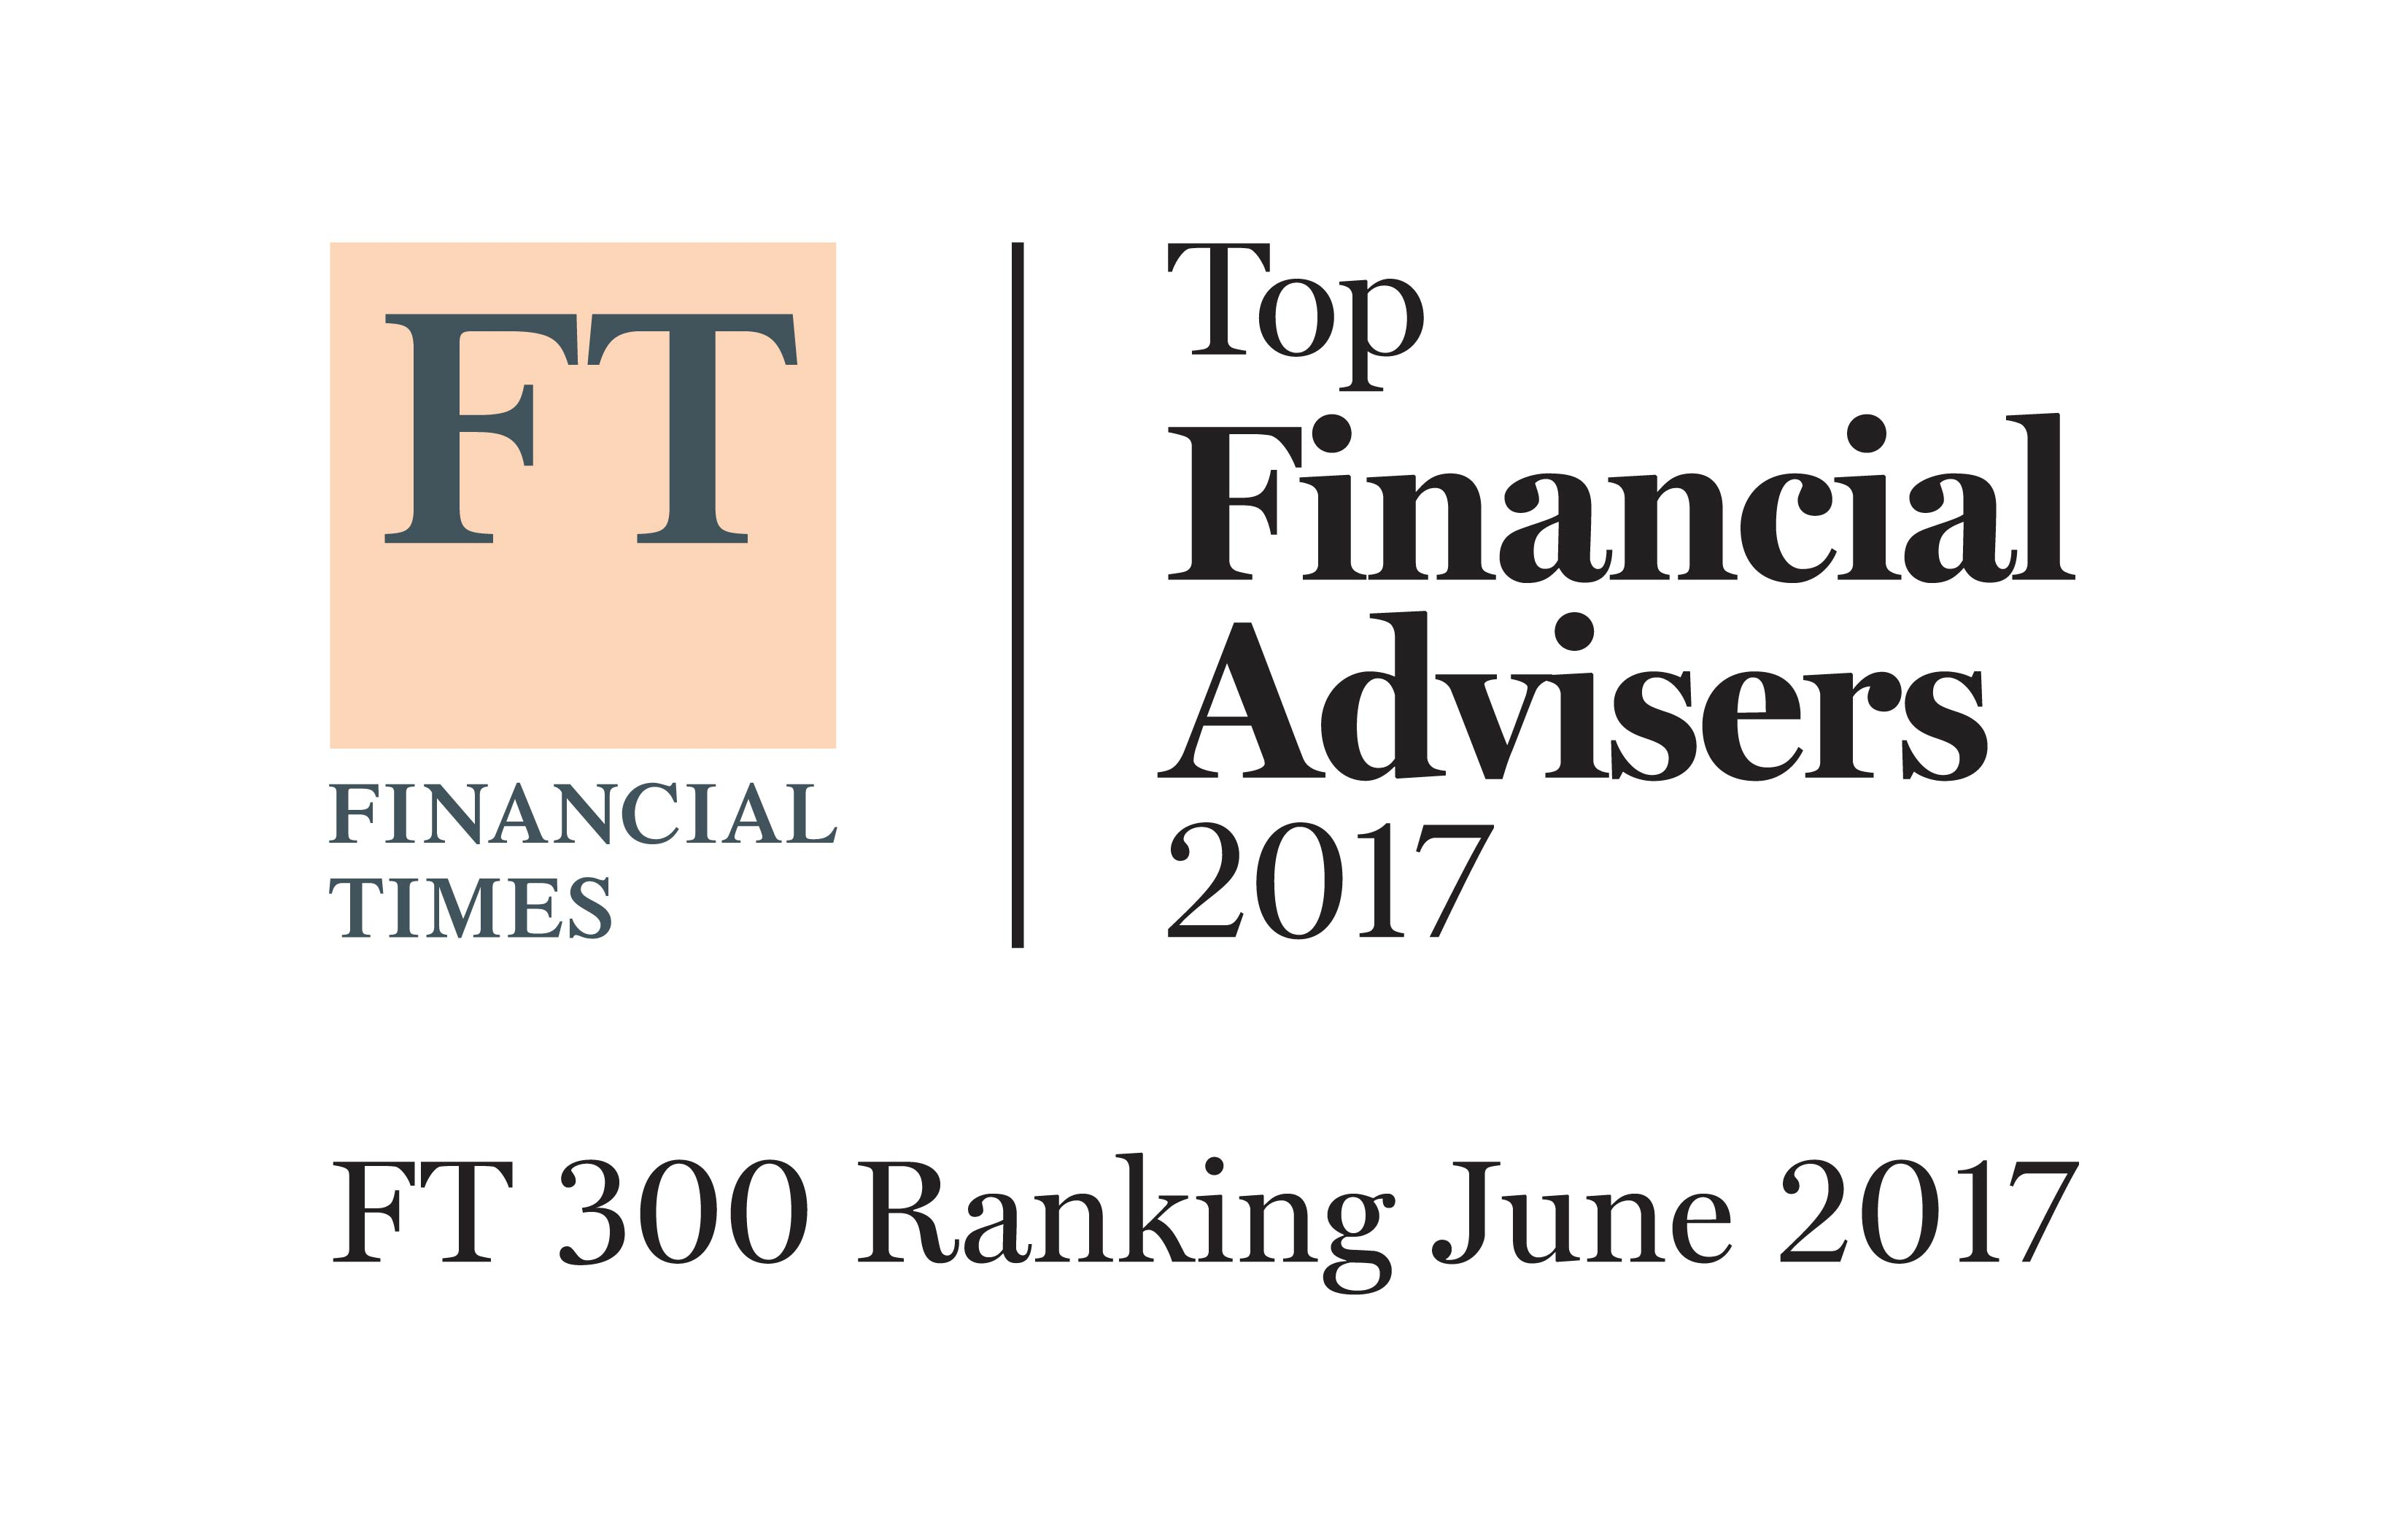 Bridges named top 300 Financial Advisers by Financial Times.